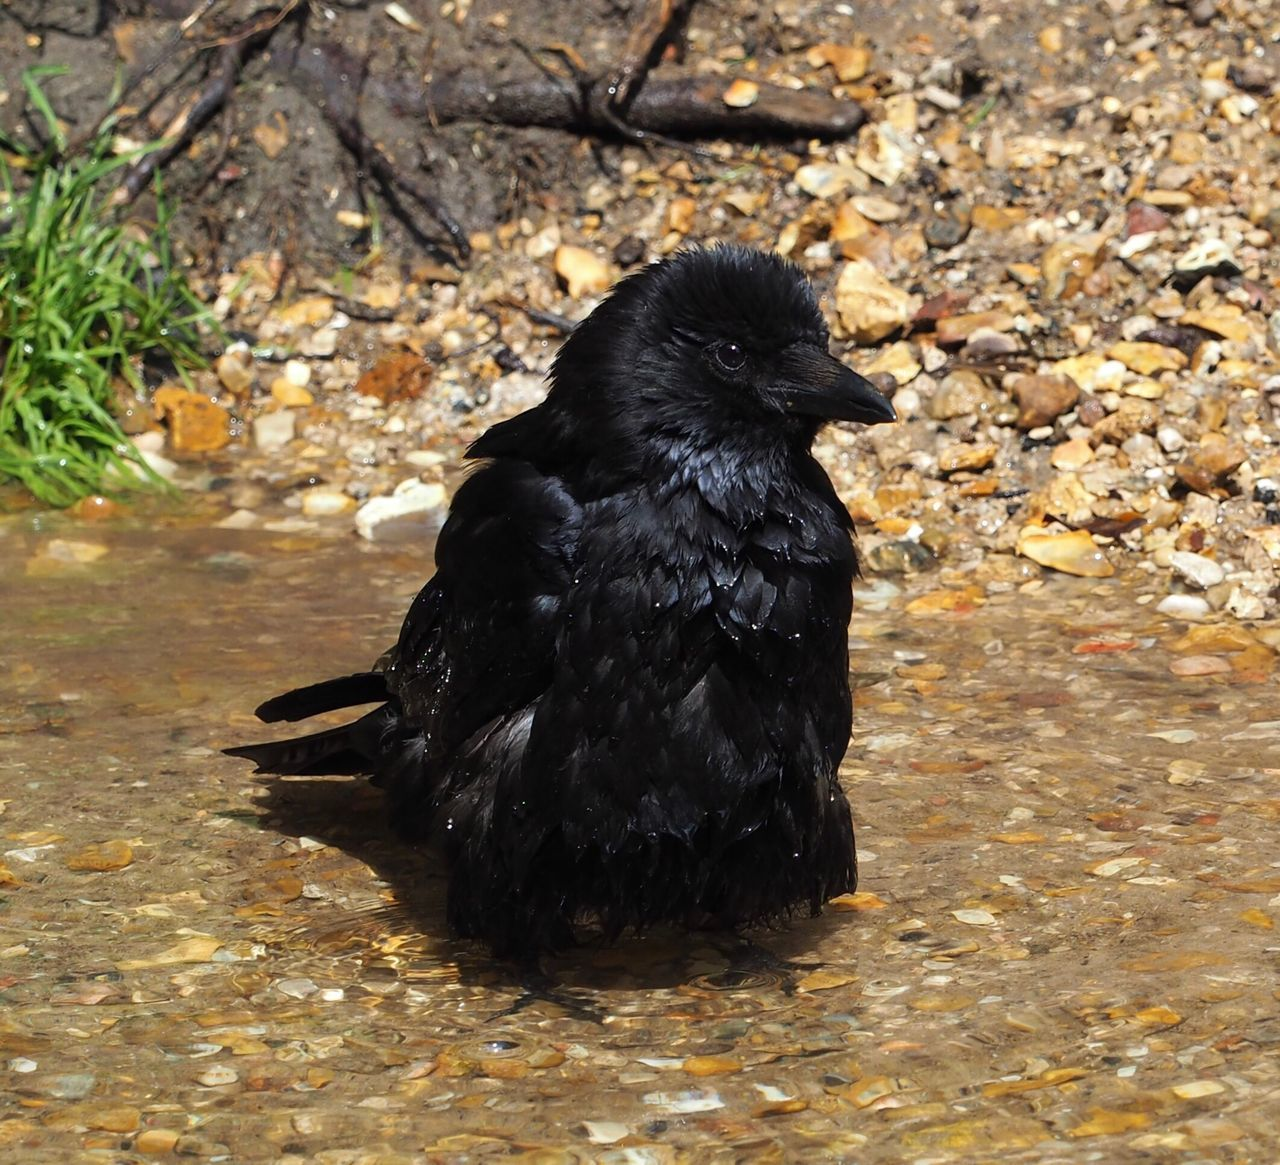 black color, one animal, animal themes, bird, no people, crow, day, outdoors, nature, close-up, mammal